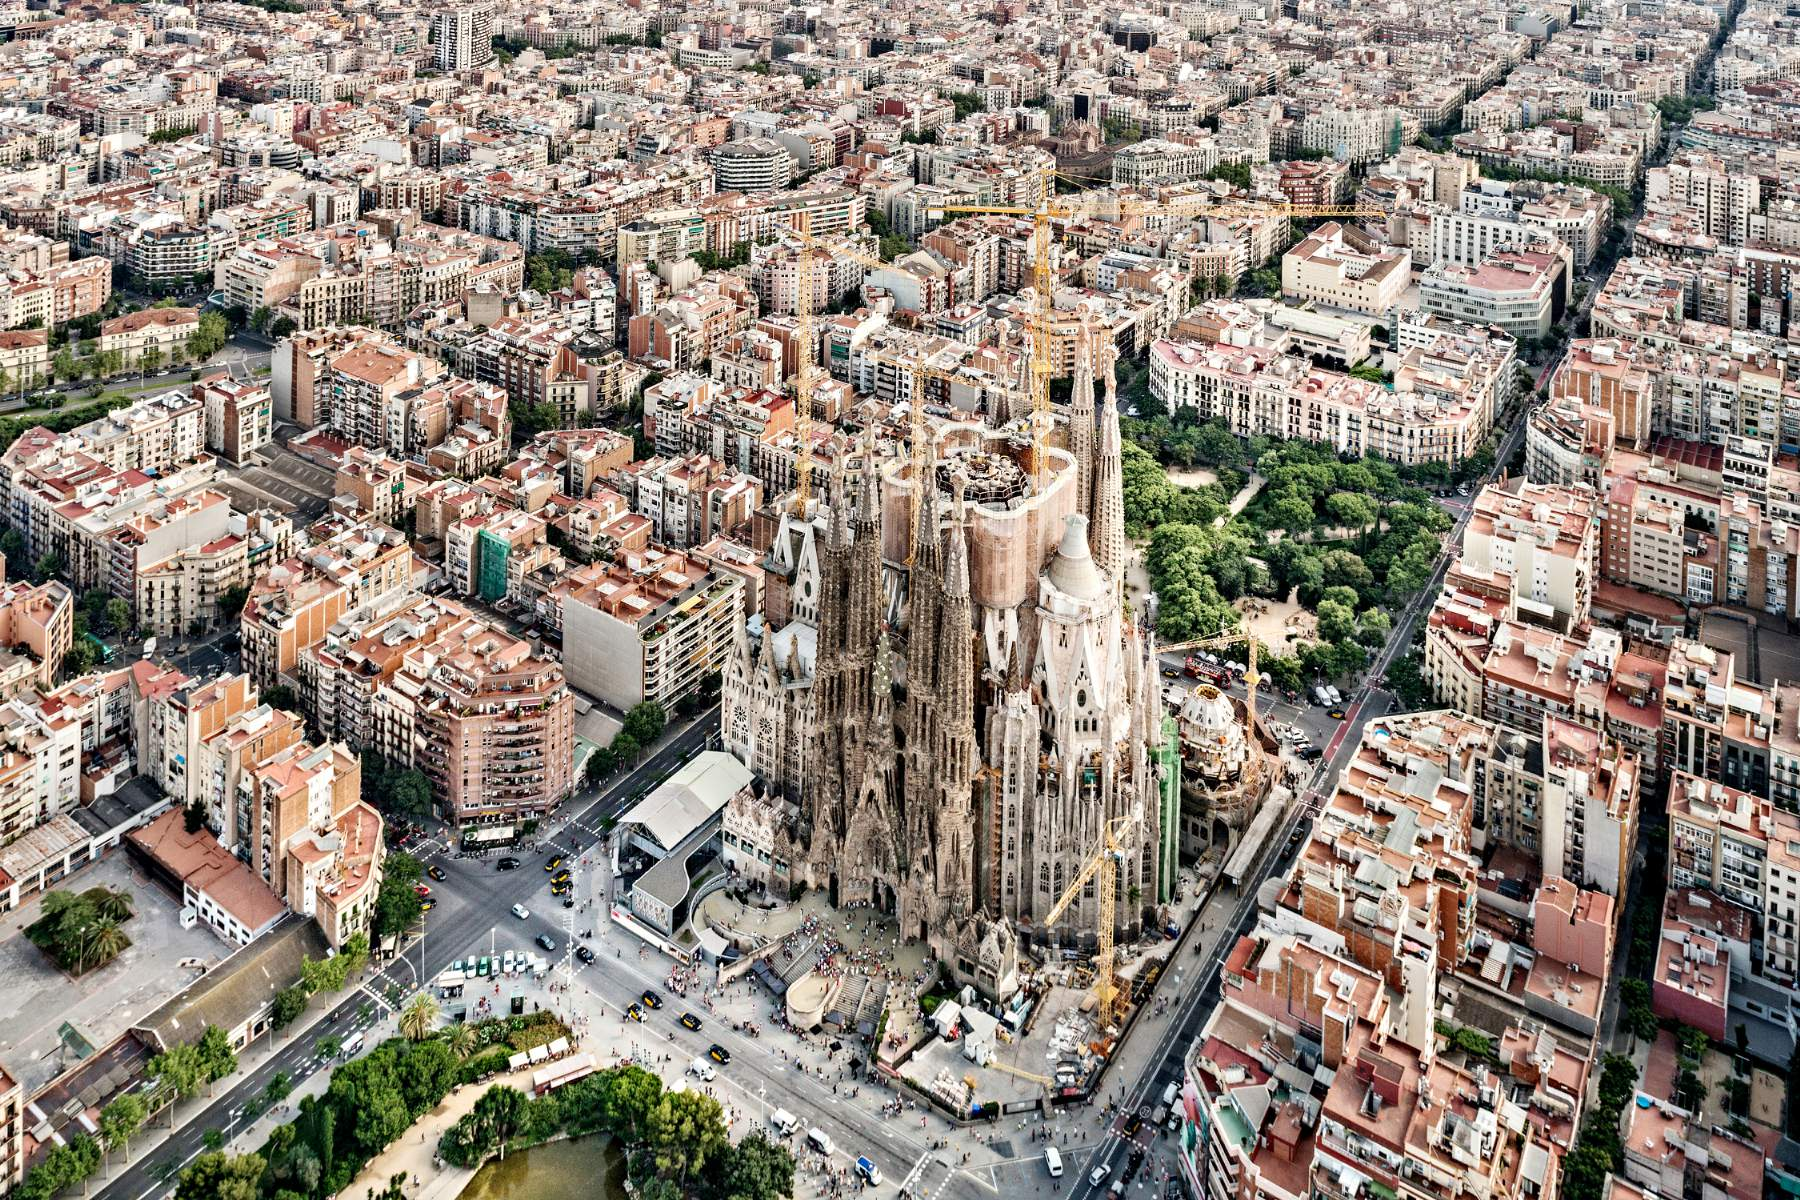 52 places to go in 2016 asit greece for Barcelona famila